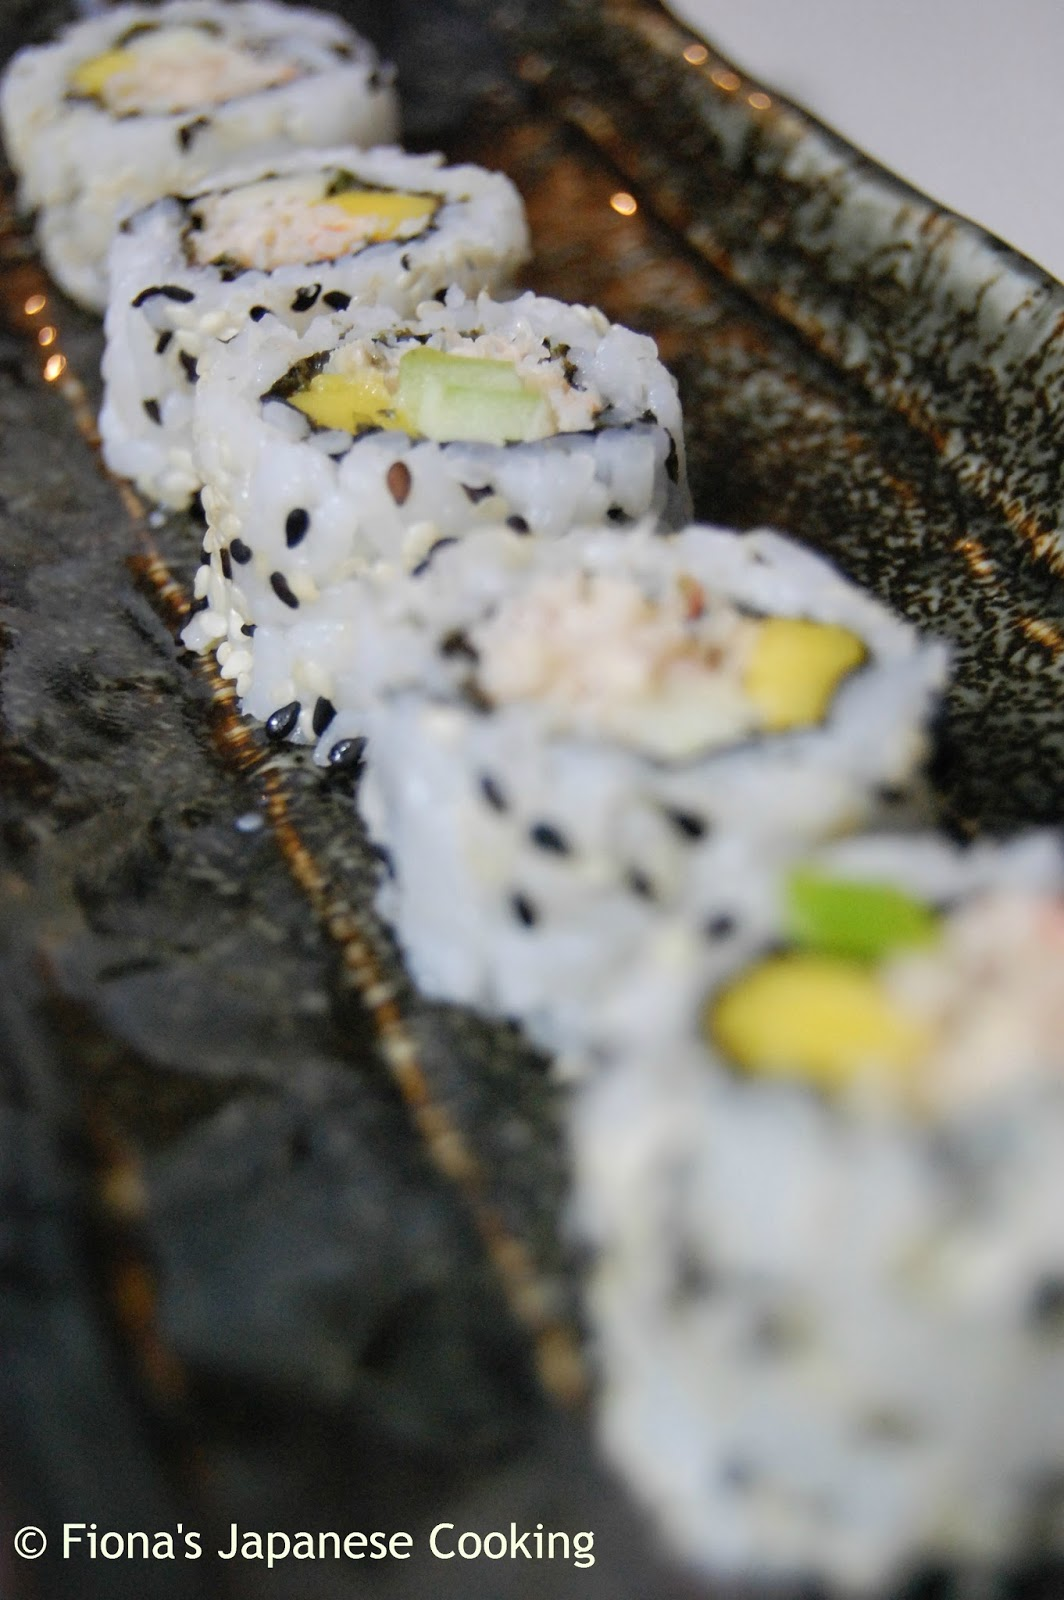 Fiona's Japanese Cooking: Uramaki - inside out sushi roll ...